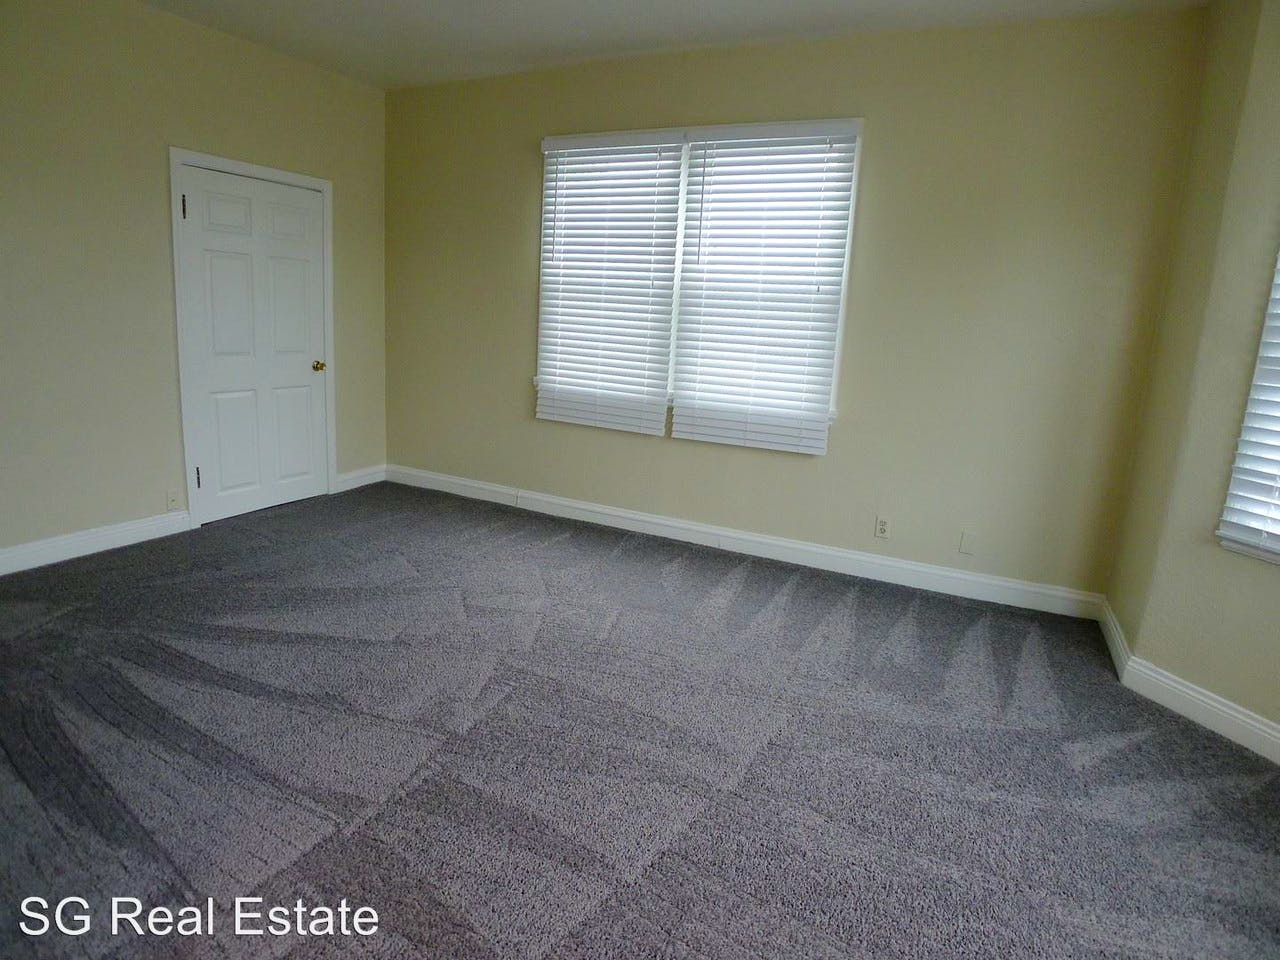 What does $1,600 rent you in Oakland, today?